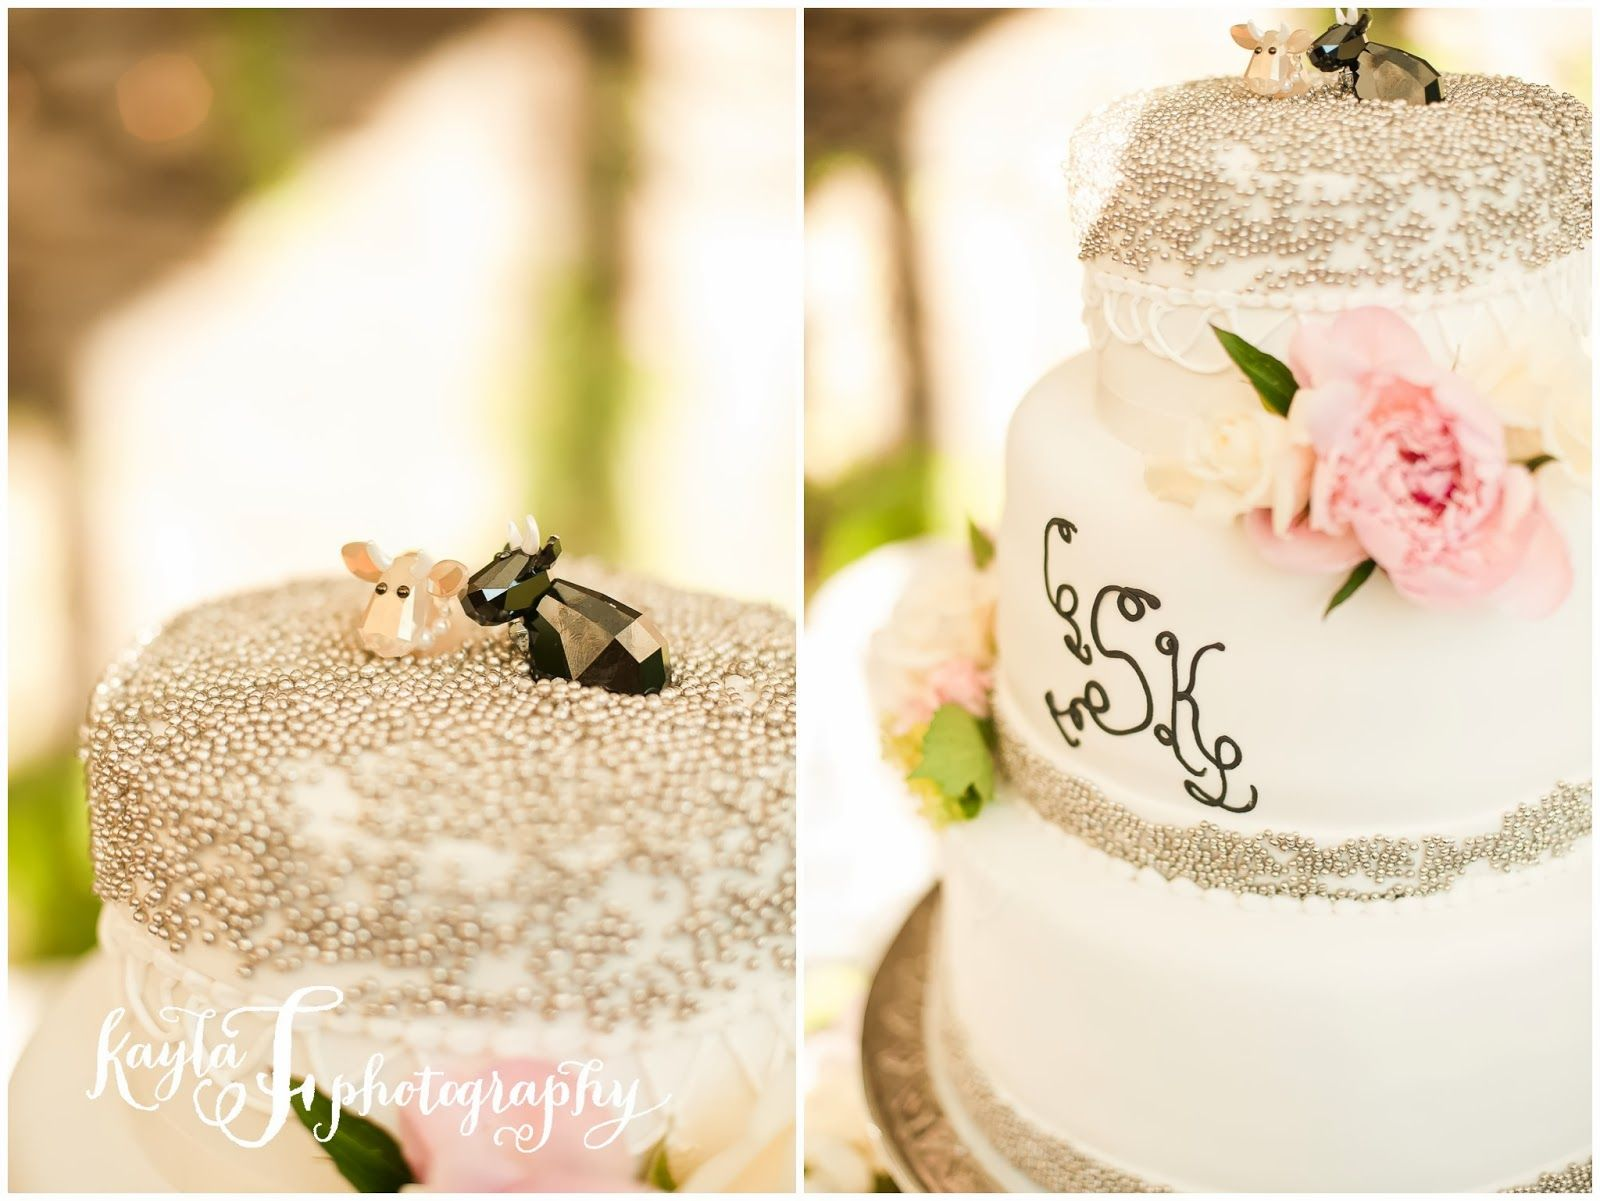 Beaded wedding cake with cow toppers. So cute! Kayla F Photography ...